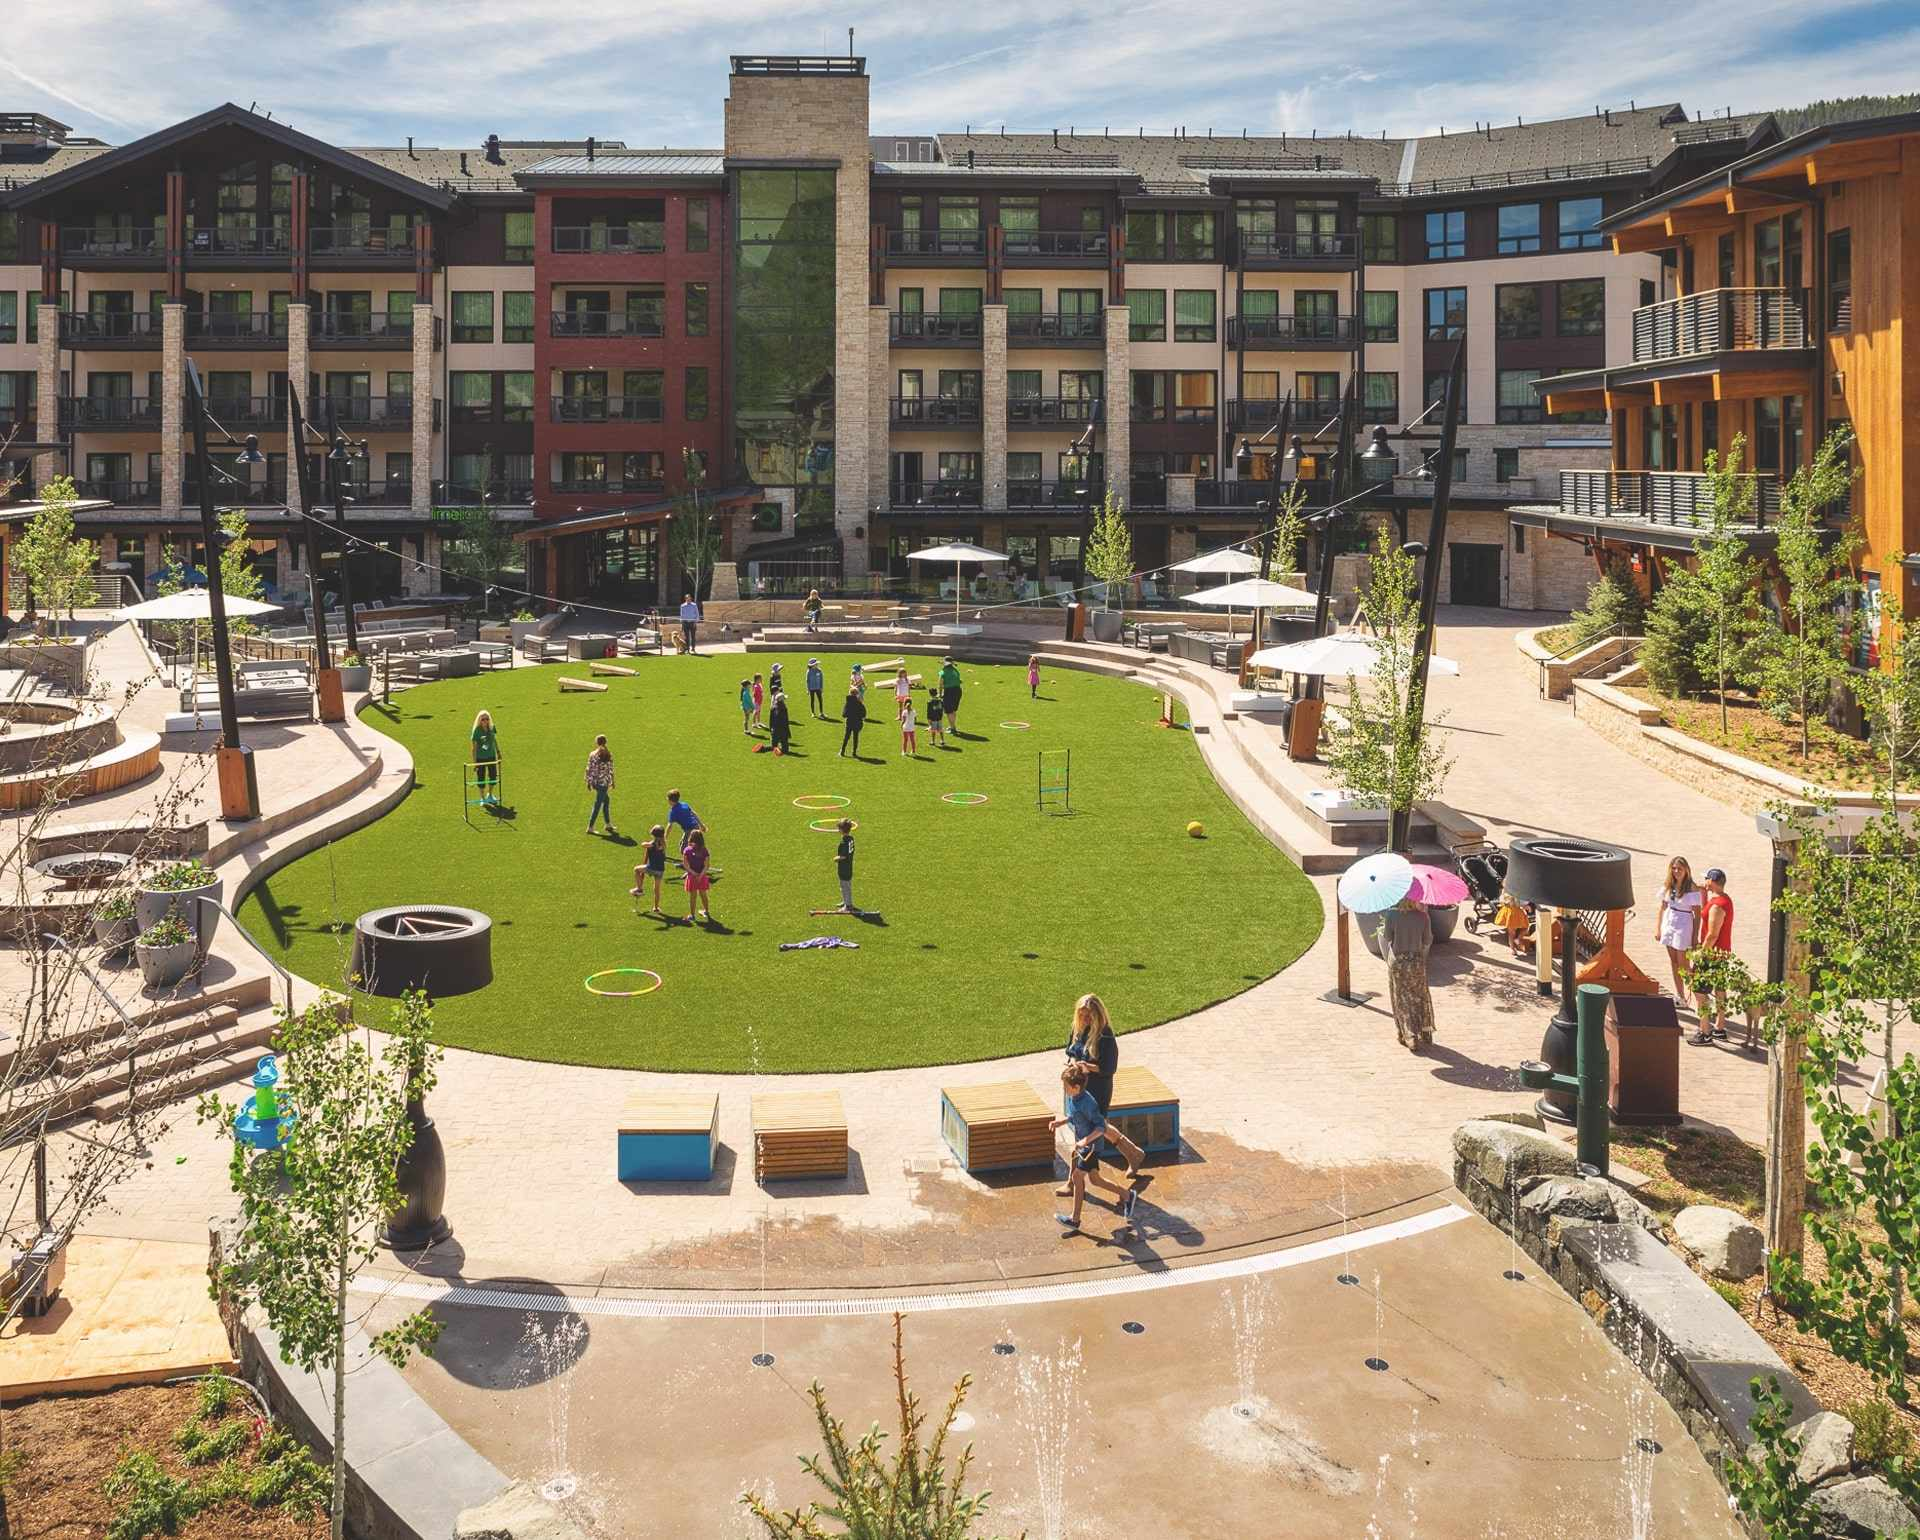 LEED GOLD. - Targeting LEED Gold certification to join an existing collection of LEED certified buildings throughout Snowmass Base Village, which, as a whole, is a LEED certified neighborhood.